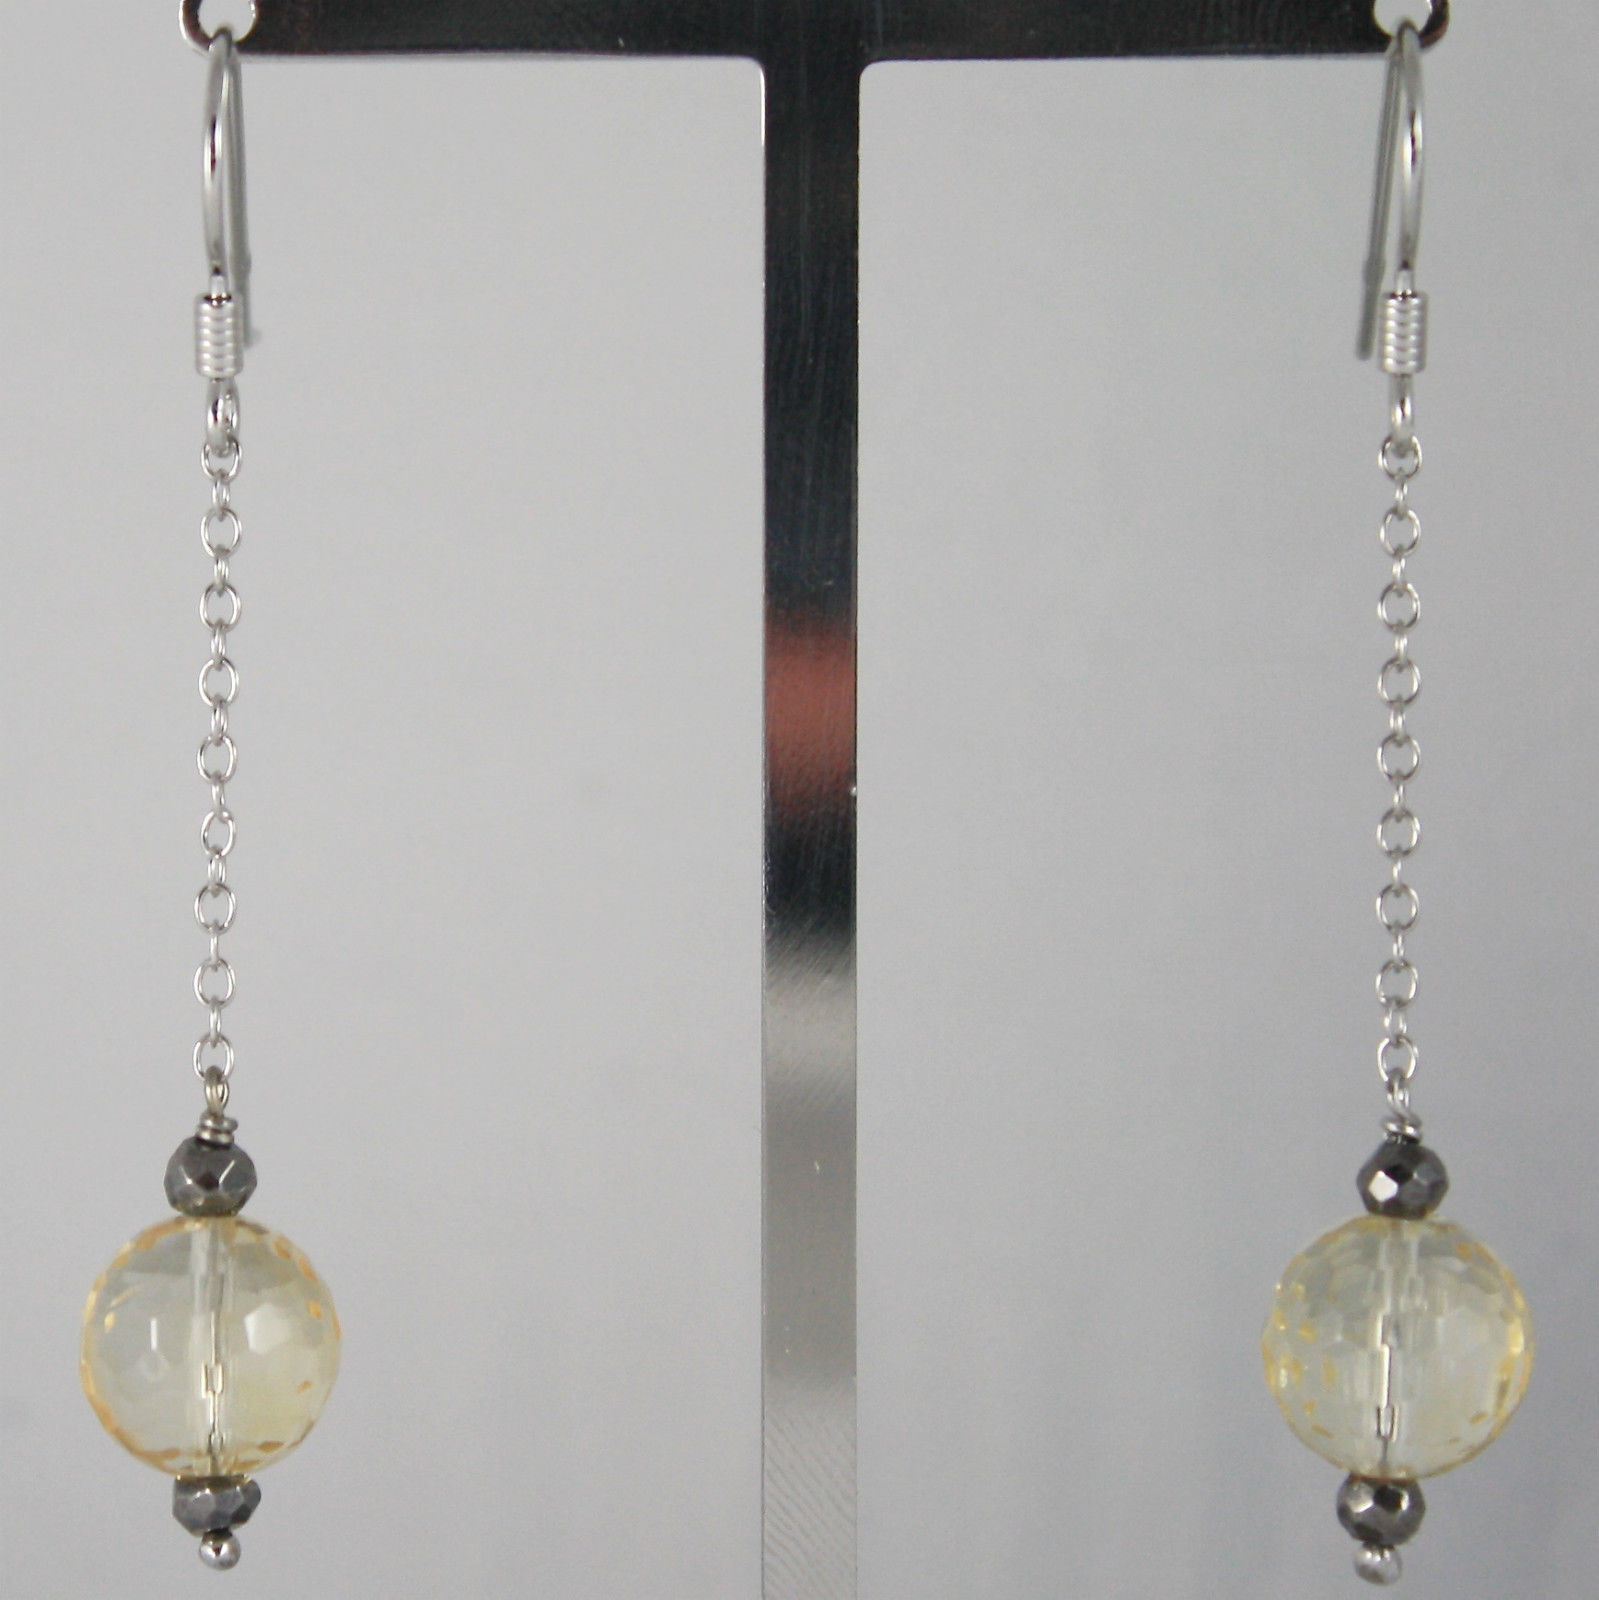 925 SOLID STERLING SILVER RHODIUM PENDANT EARRINGS WITH CITRINE & PYRITE